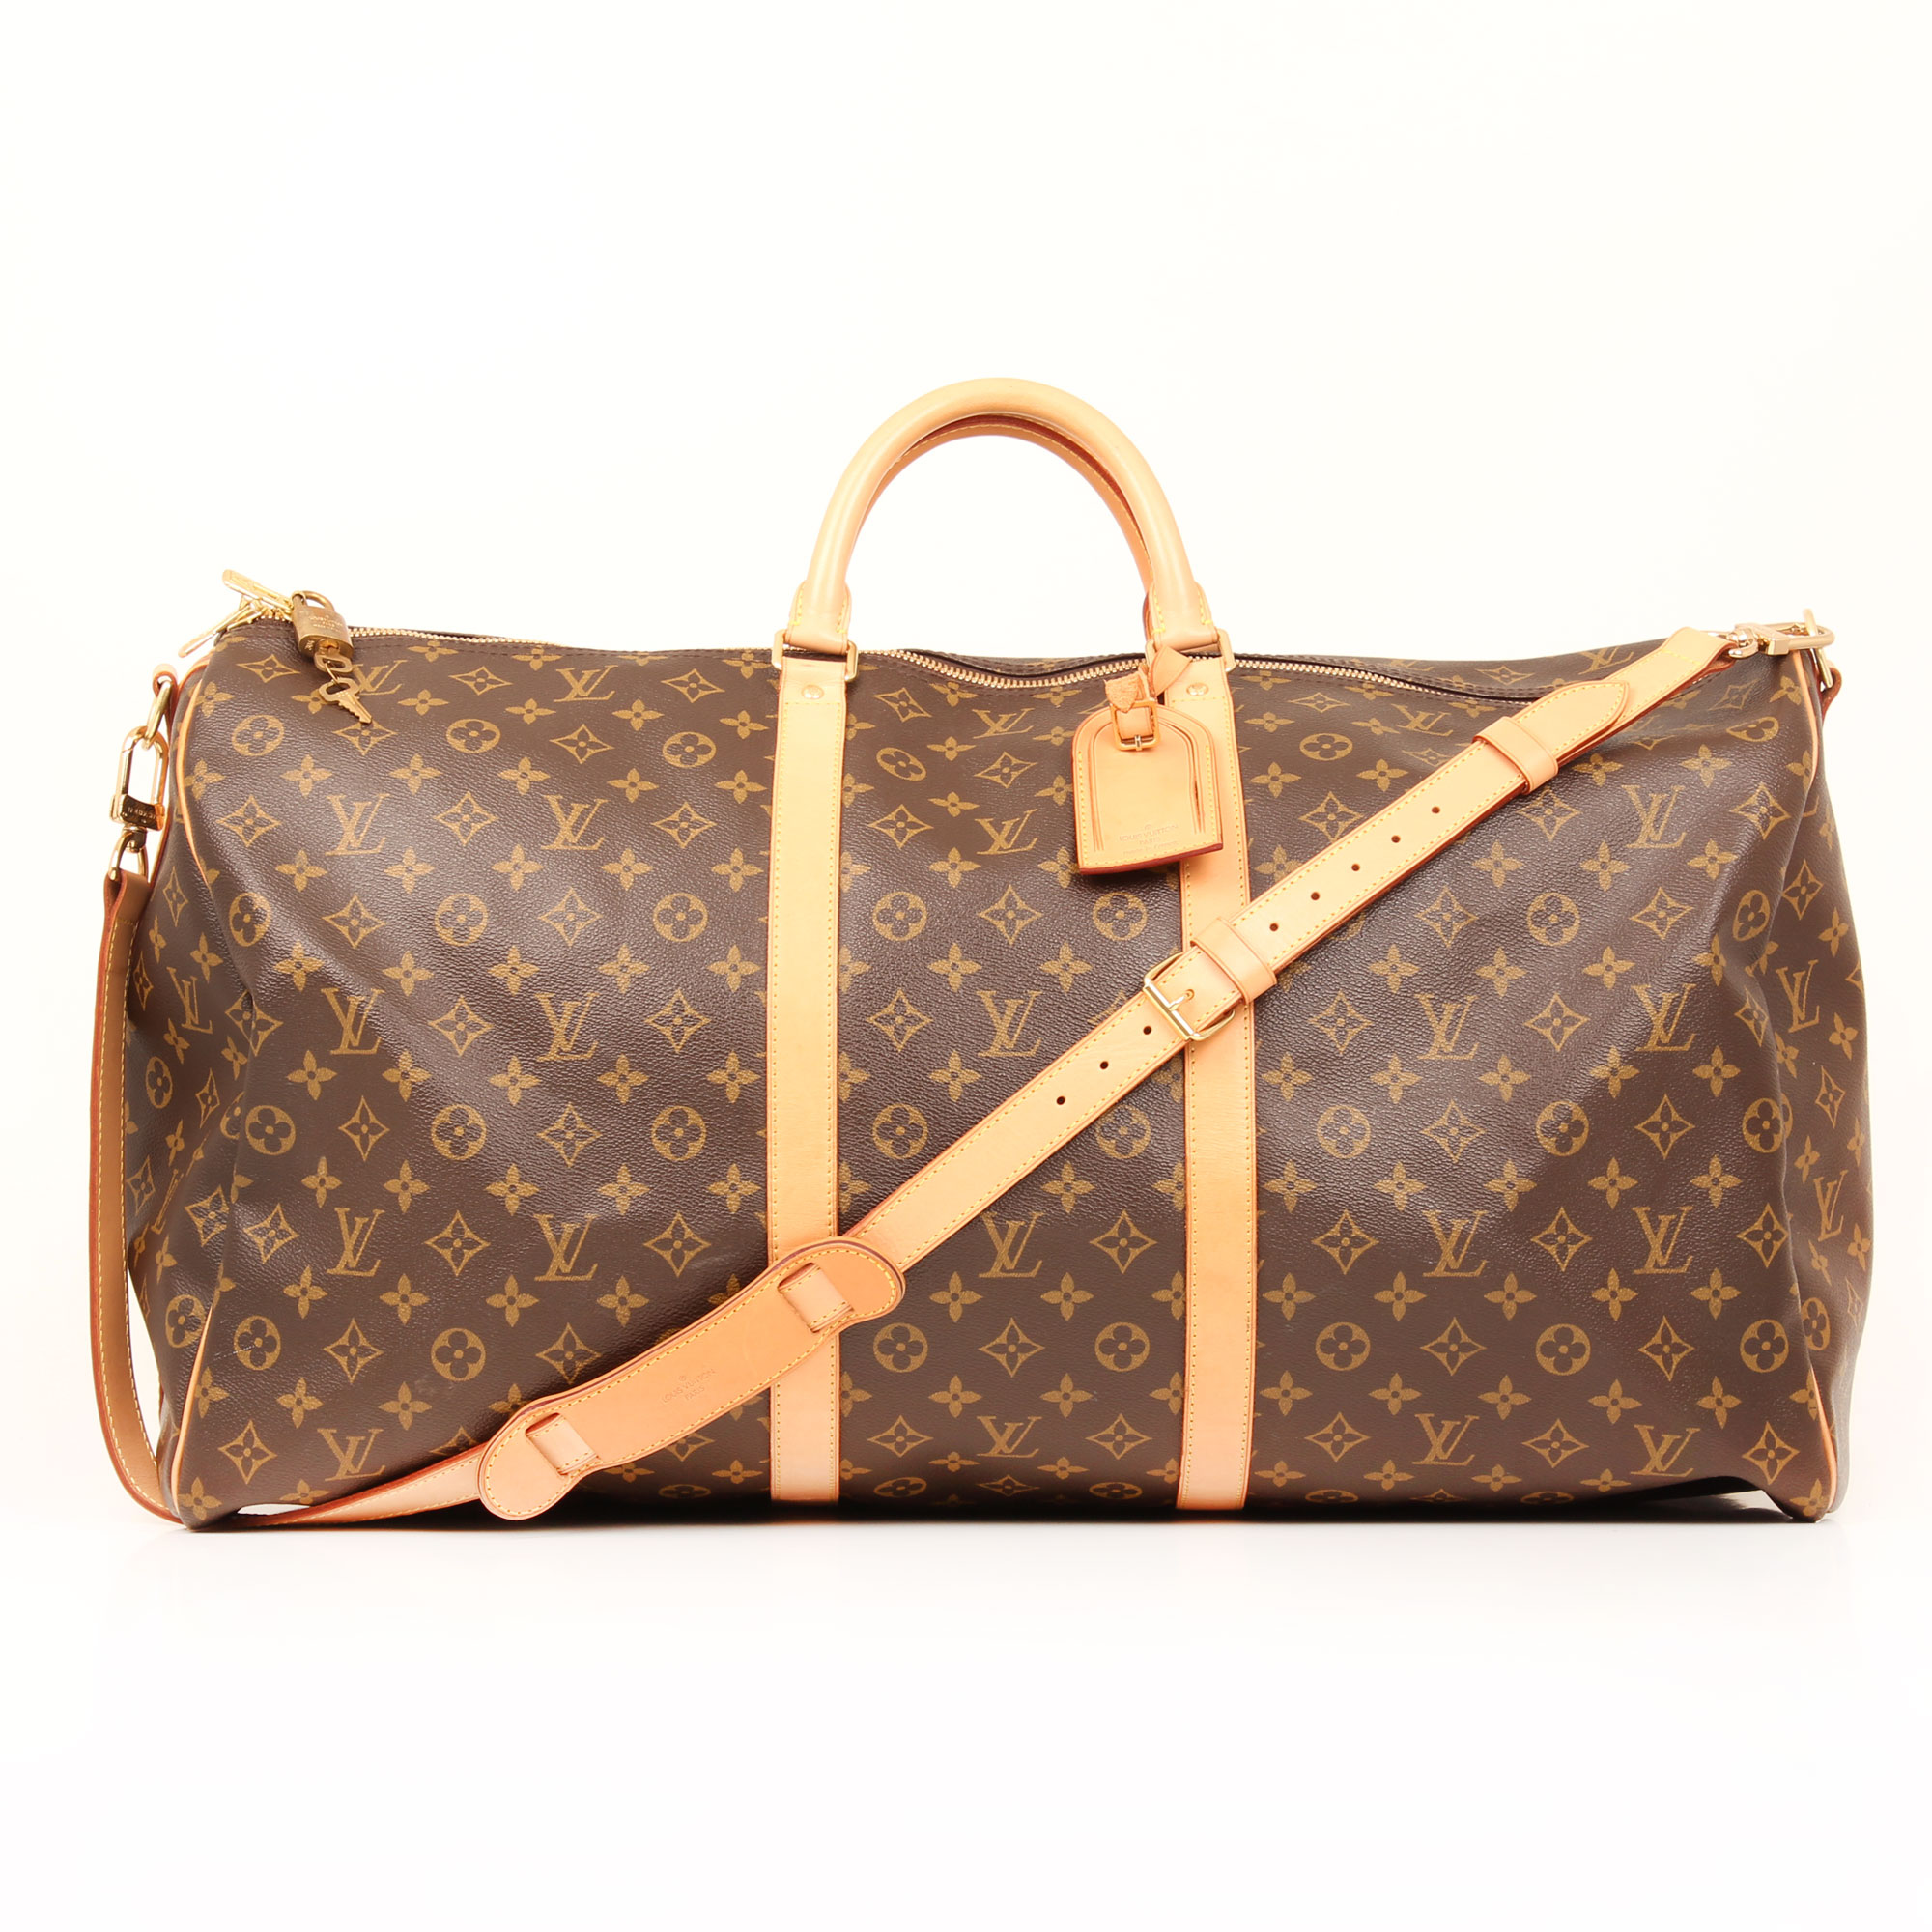 travel-bag-louis-vuitton-keepall-60-monogram-front